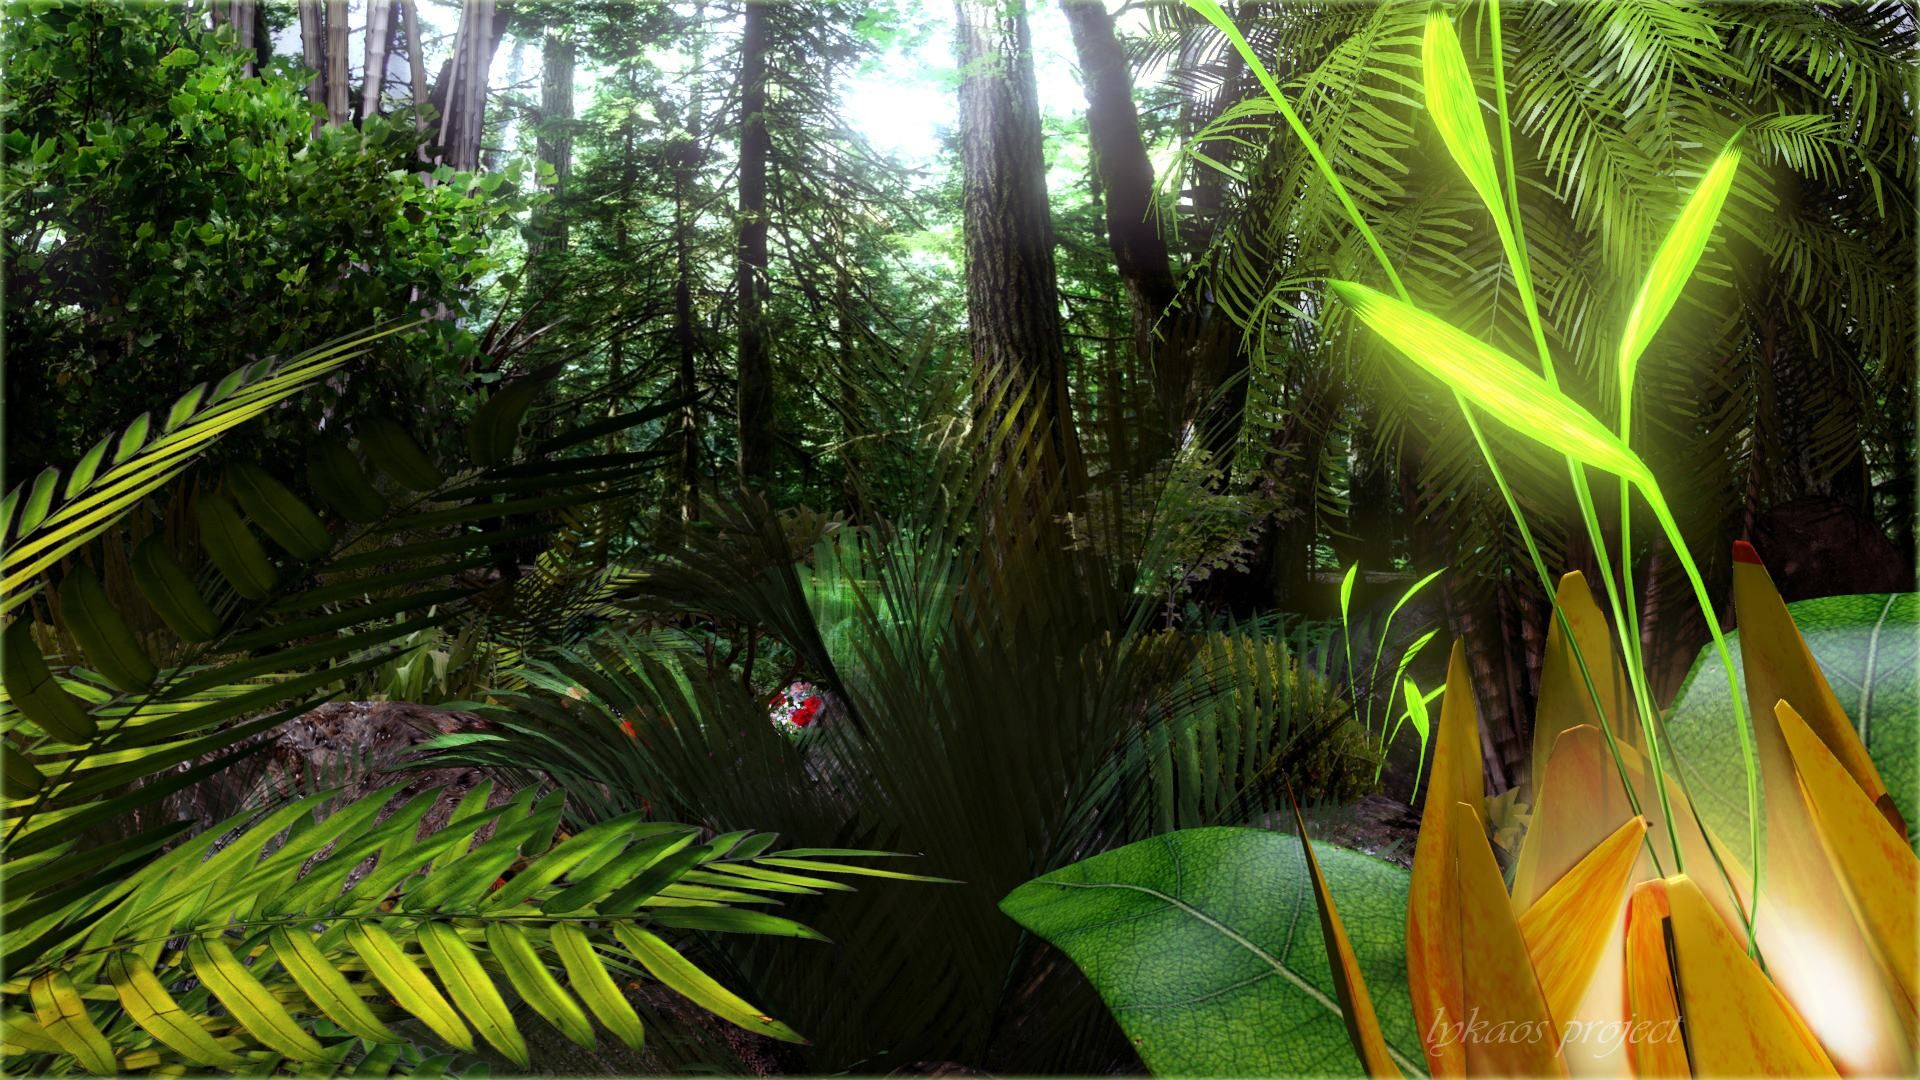 Tropical Jungle Wallpapers Group 1600x1200 49